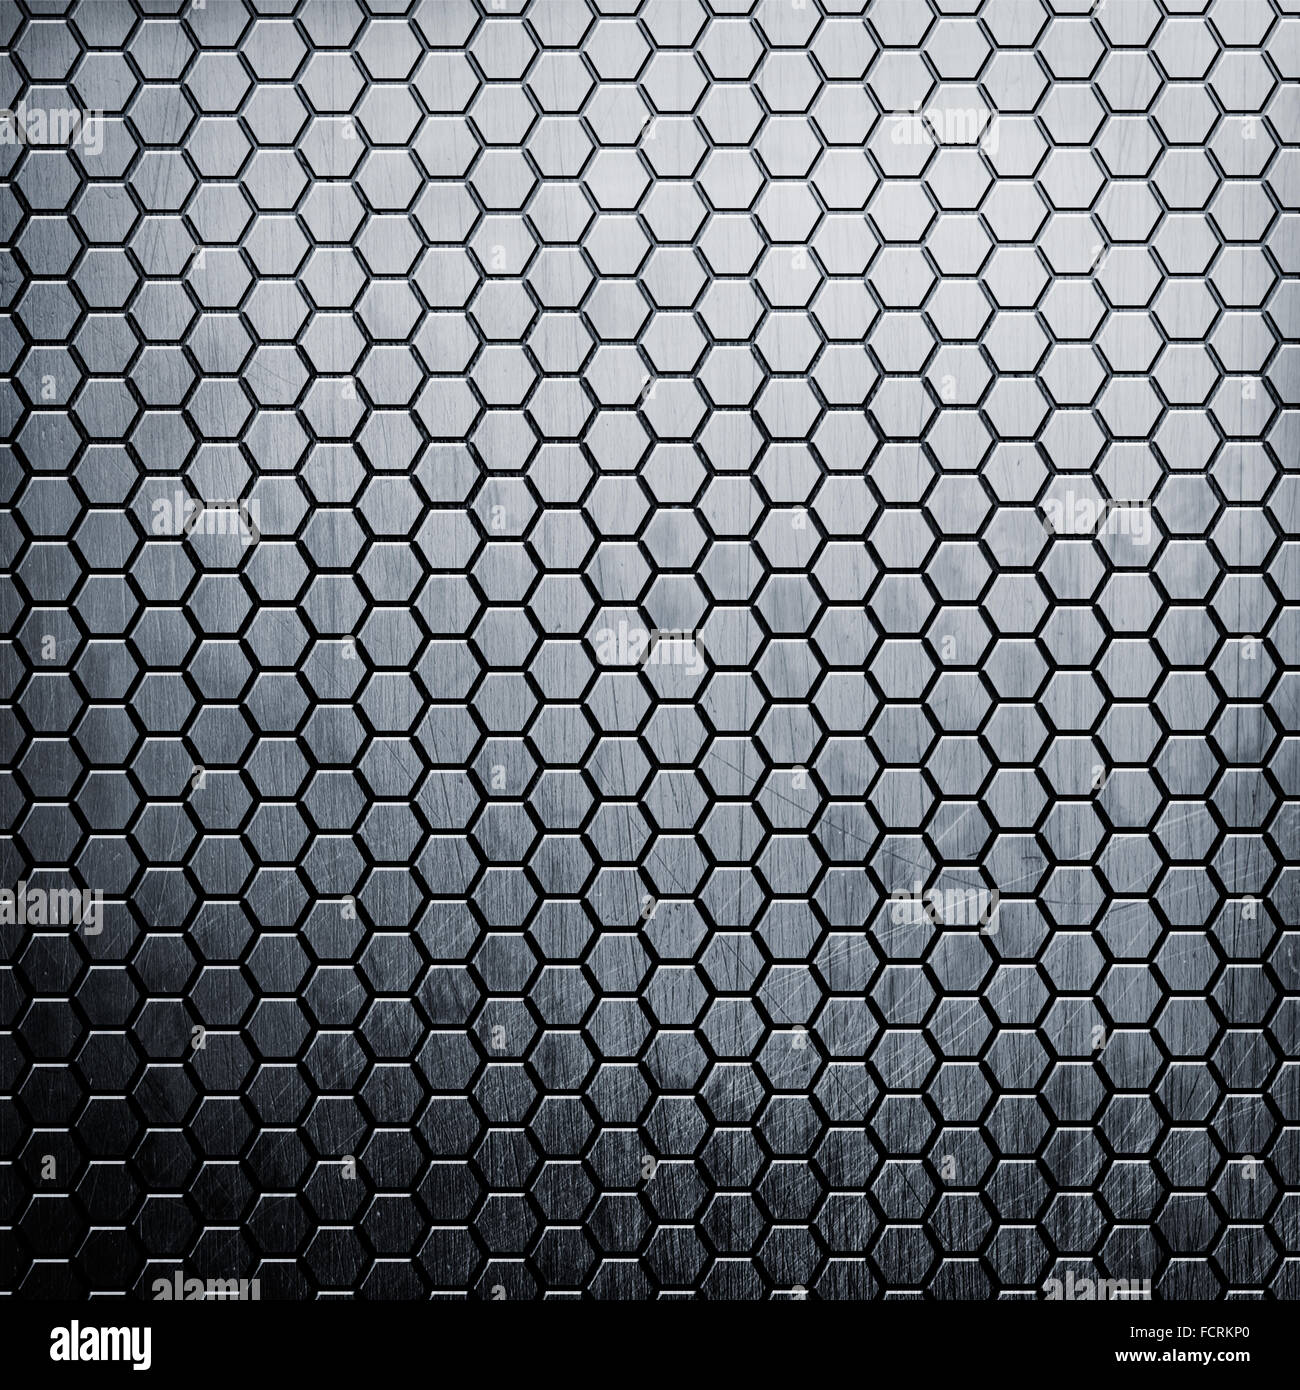 Metal background with hexahedron texture - Stock Image